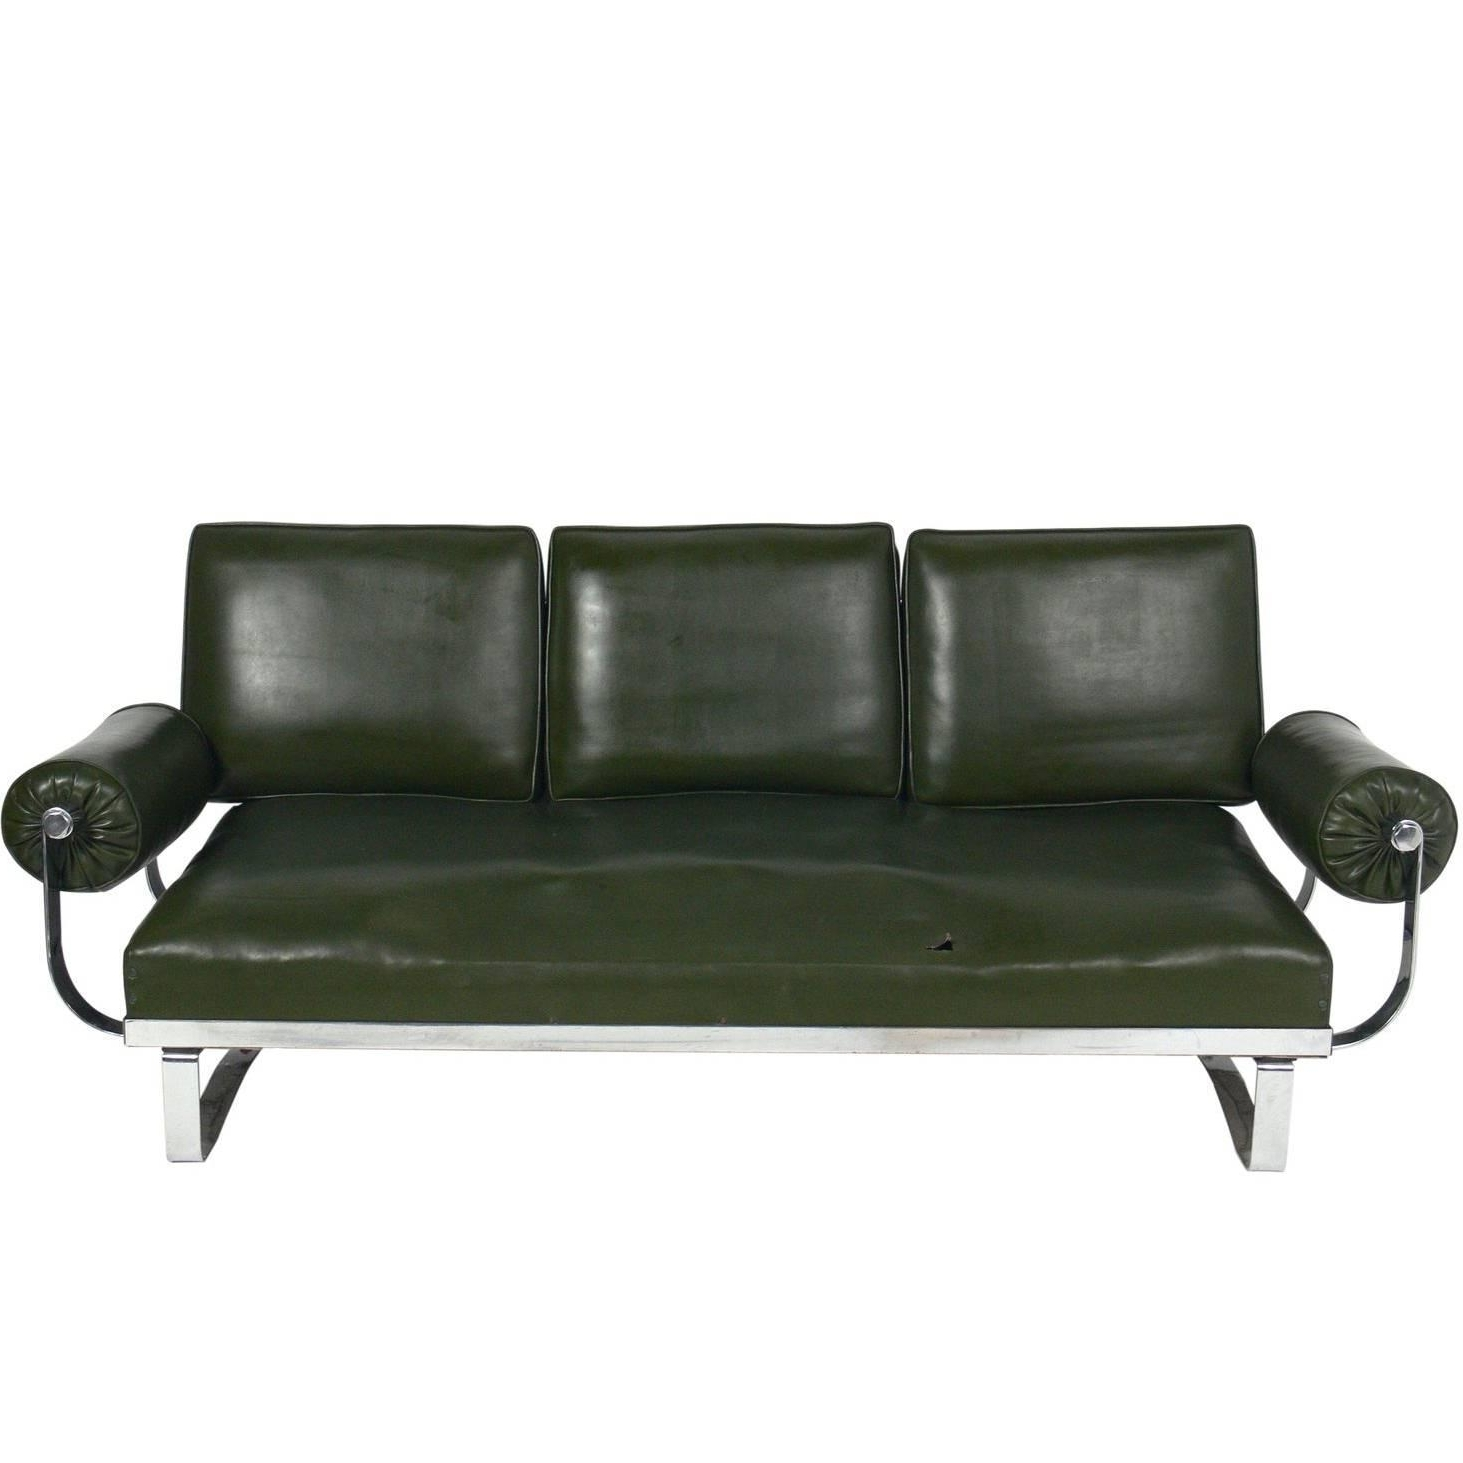 Fancy Art Deco Sofa 43 With Additional Modern Sofa Ideas With Art For Newest Art Deco Sofas (View 3 of 20)